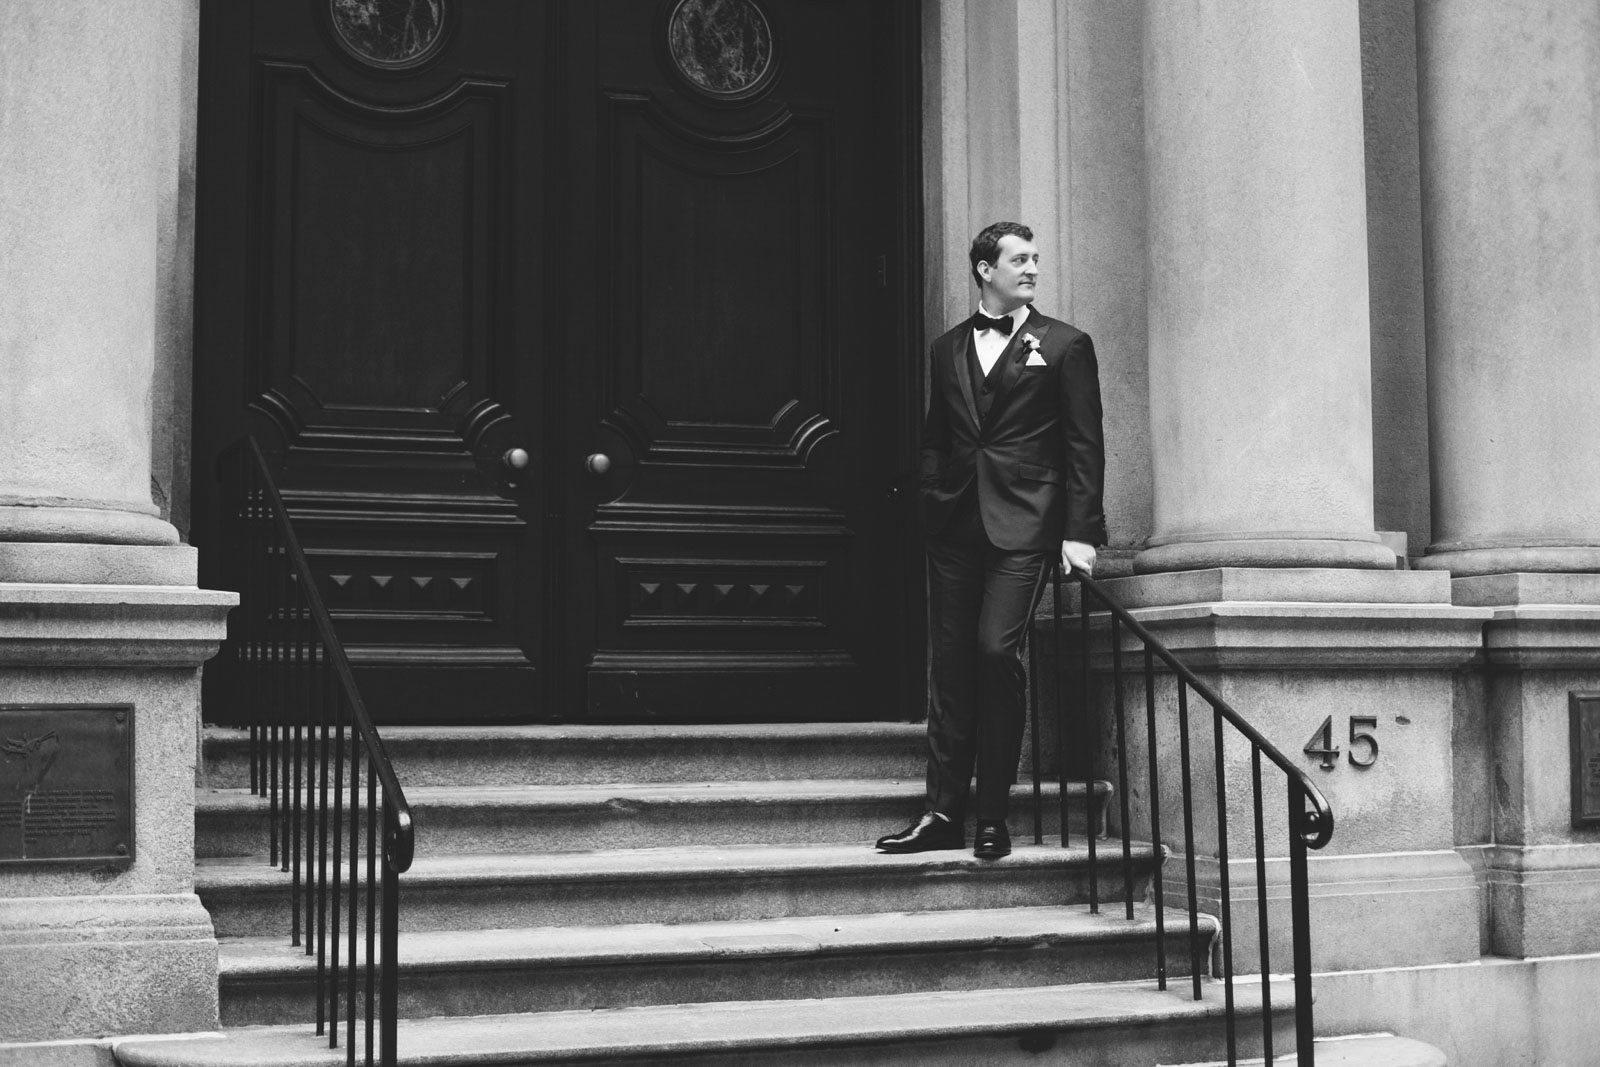 black and white shot of groom by old boston city hall with roman pillars and wrought iron railing